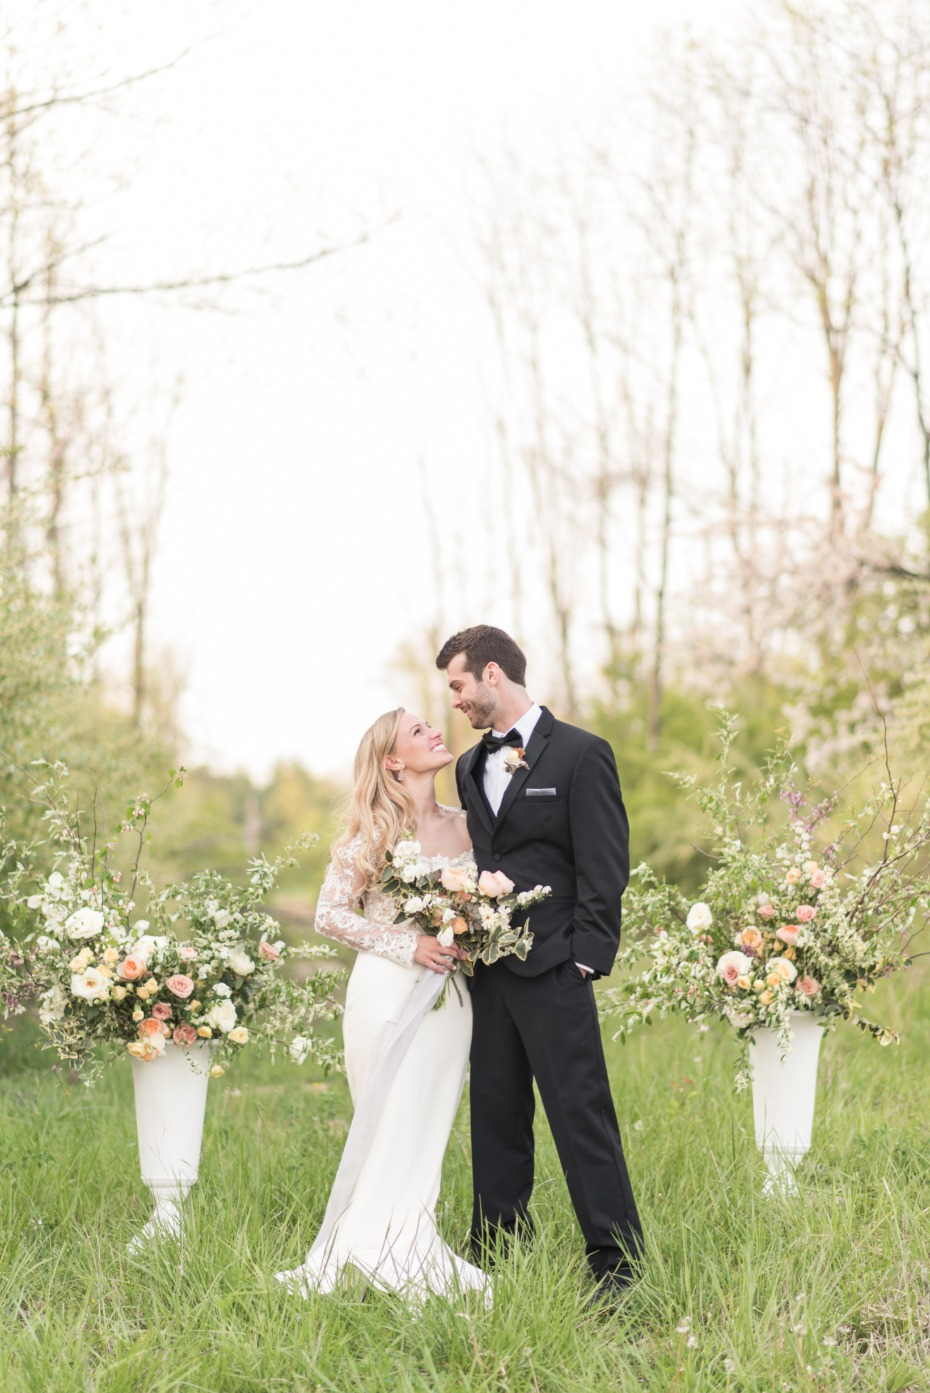 simple and elegant outdoor wedding ceremony